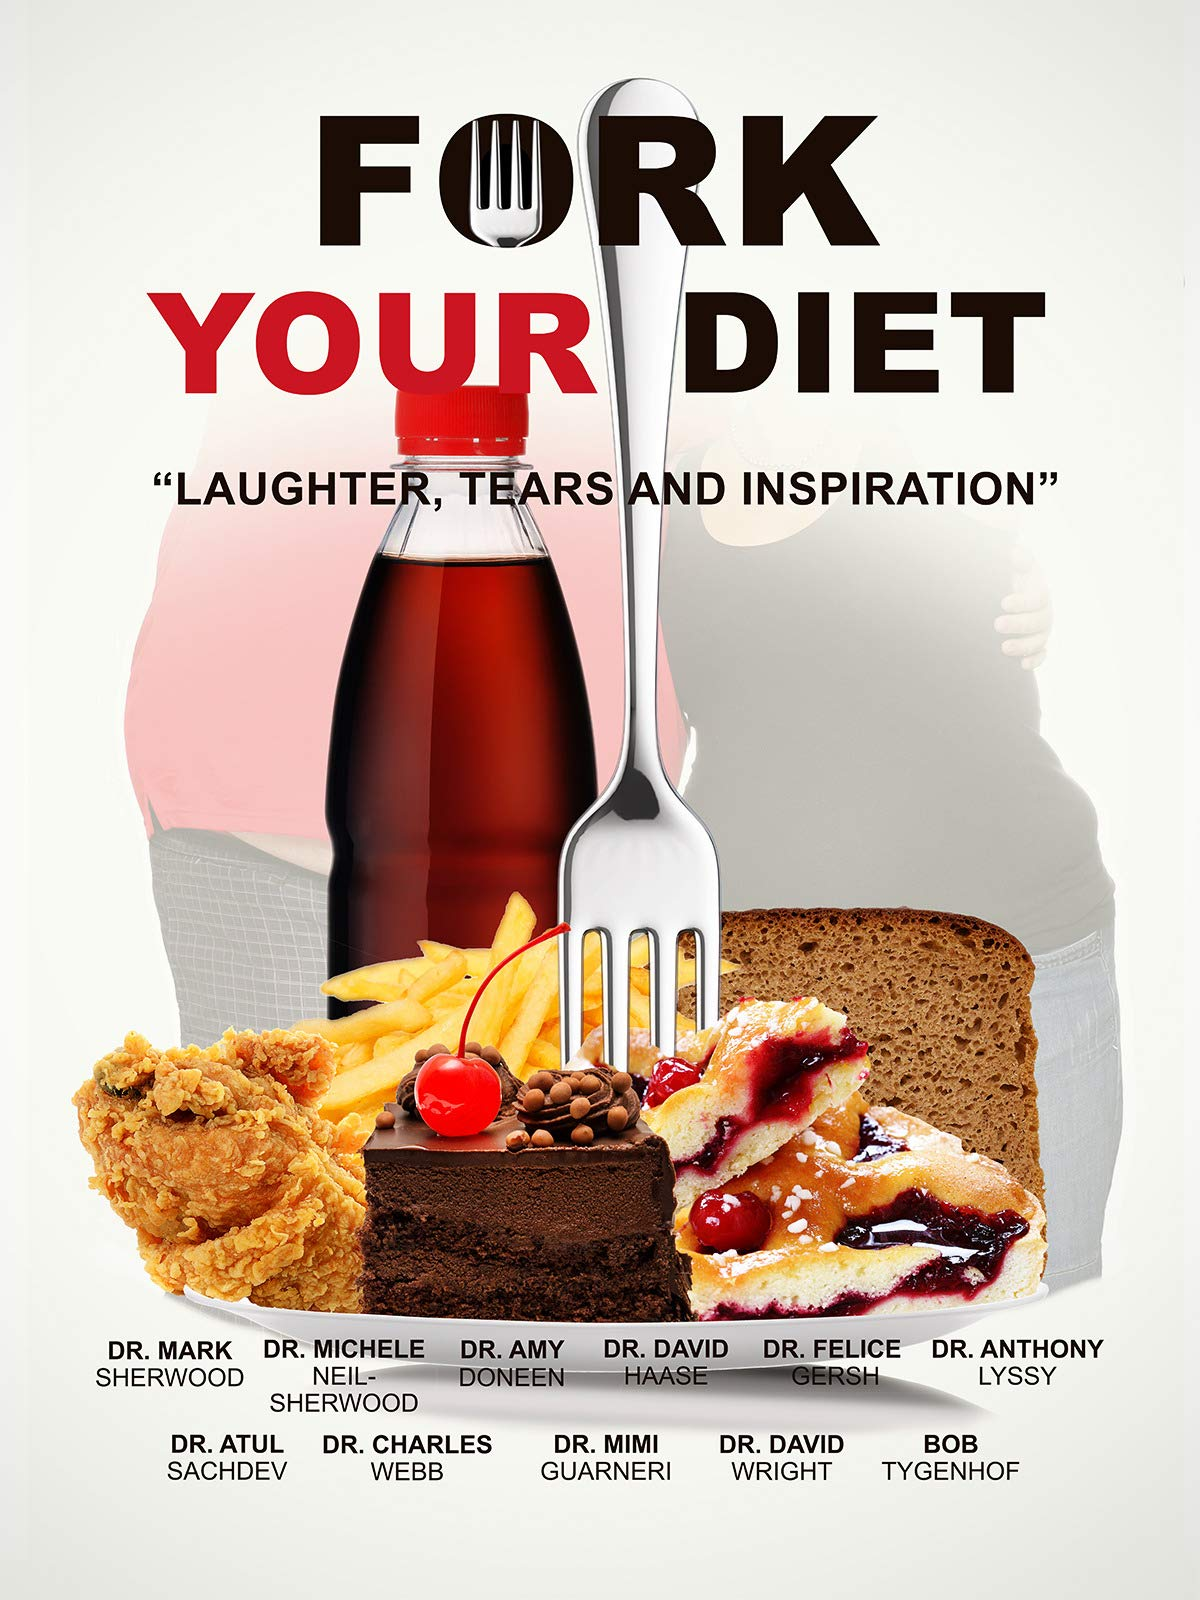 Amazon.com: Fork Your Diet: Dr. Mark Sherwood, Dr. Michele Neil ...